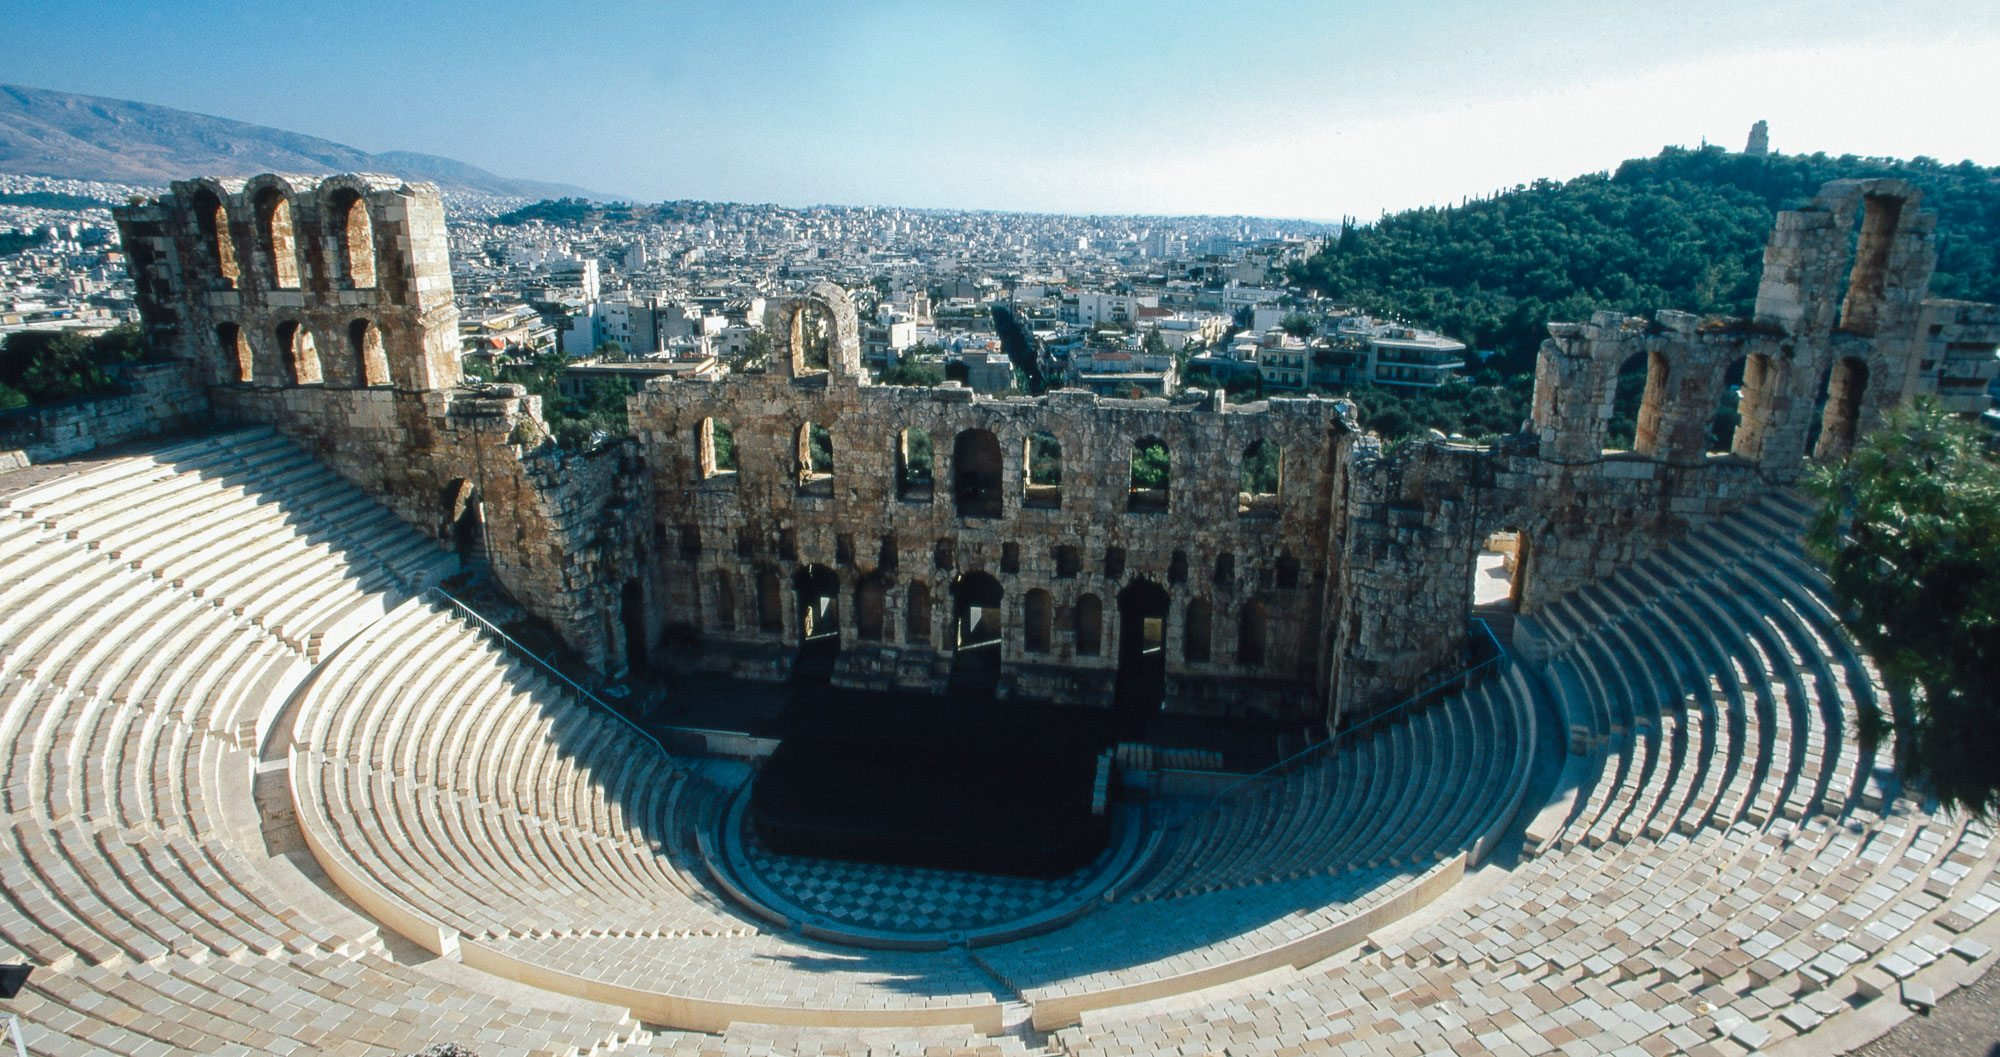 The Odeon of Herodes Atticus is a theatre adjacent to the Acropolis of Athens in Greece